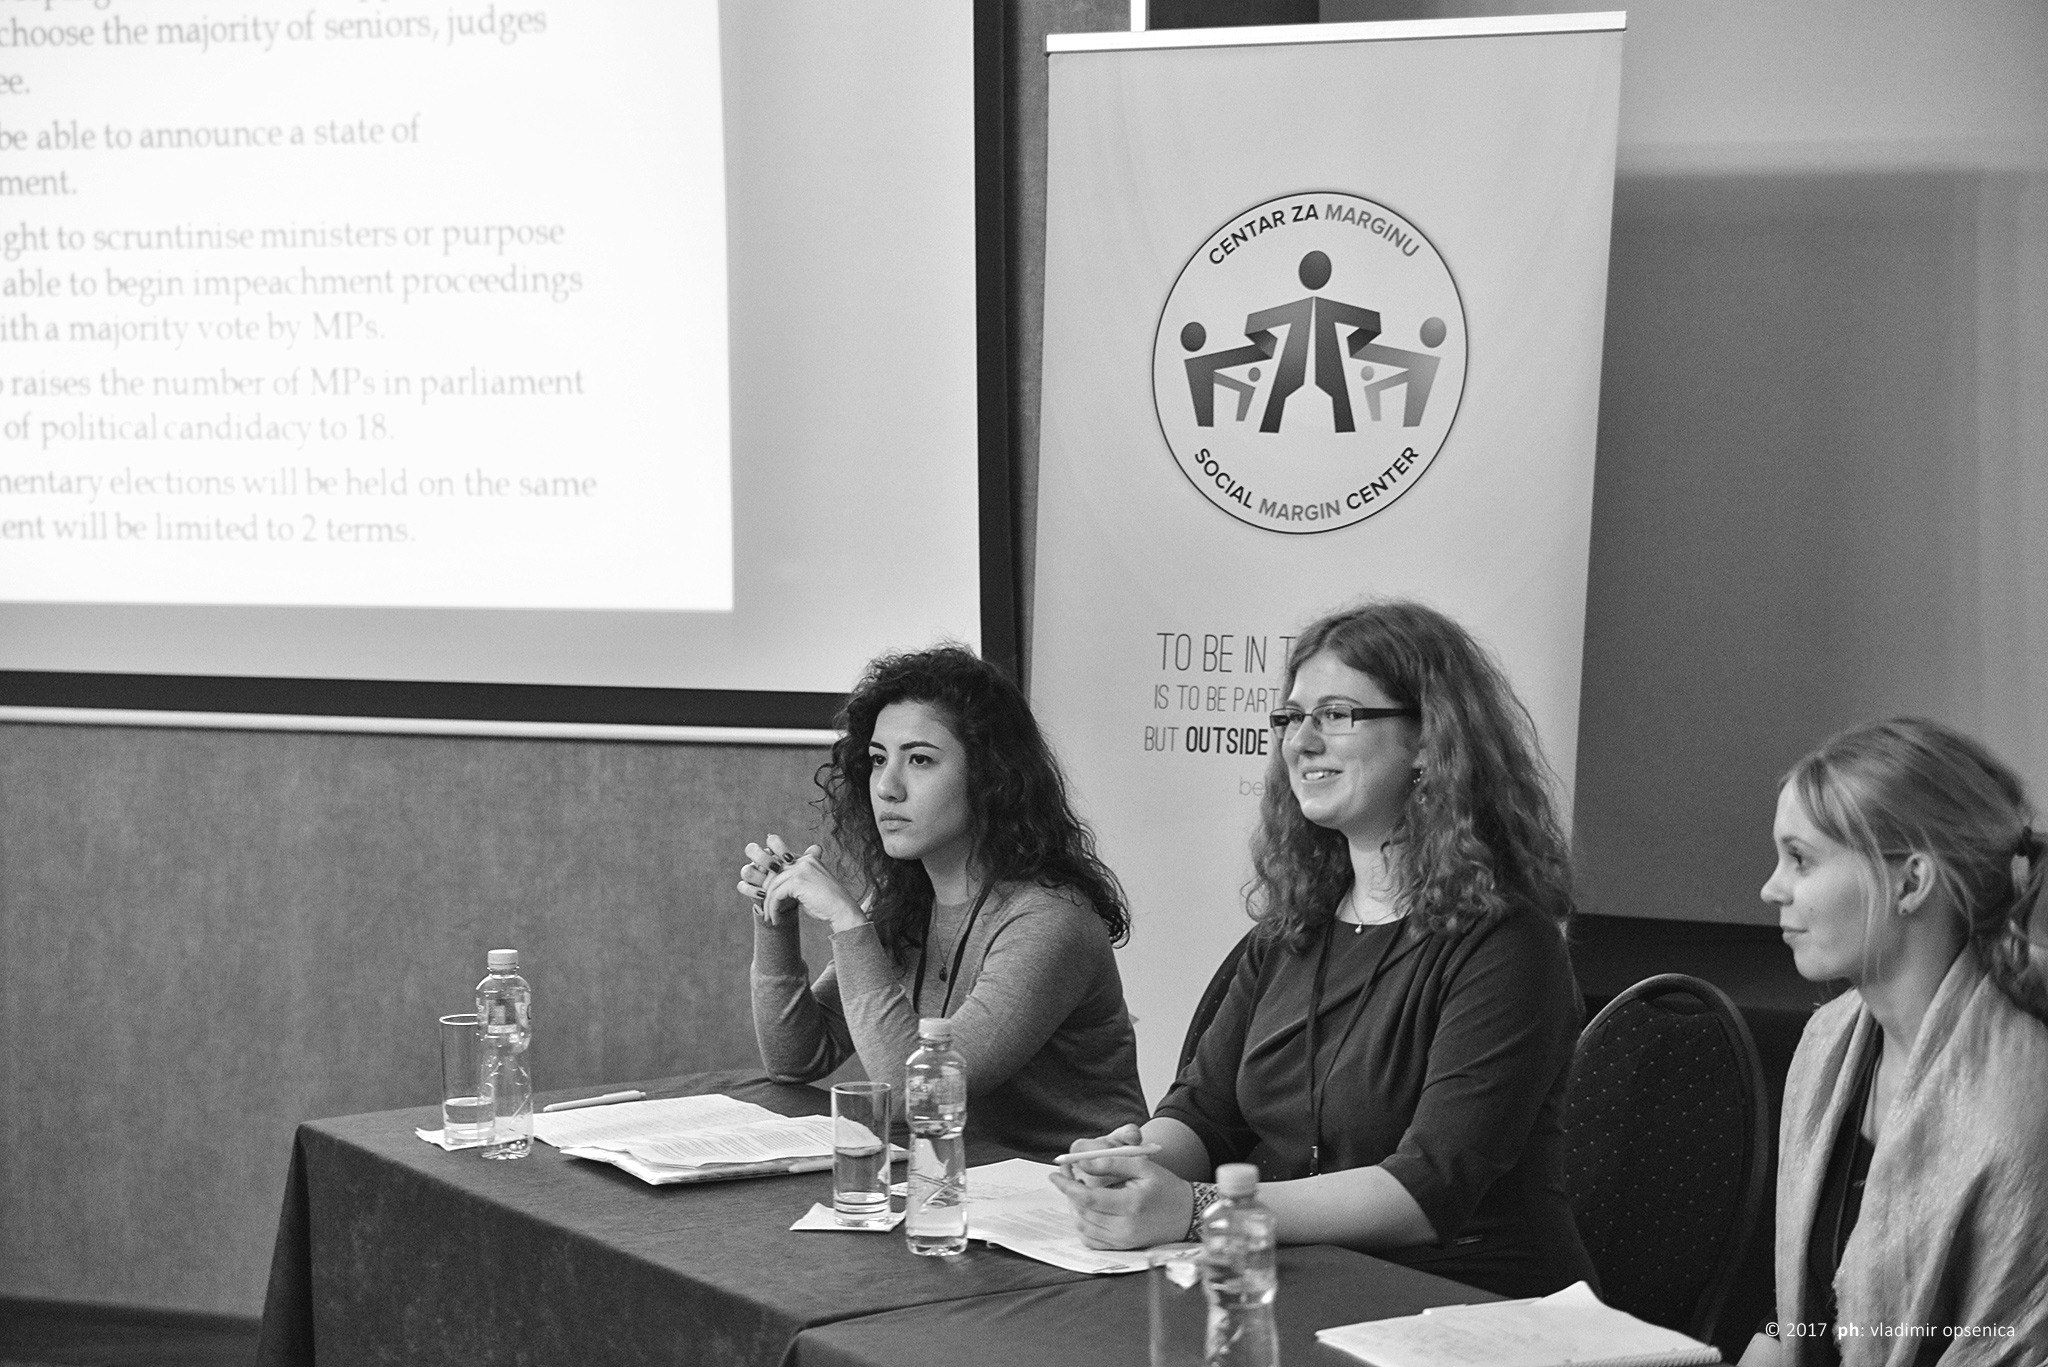 The Global Human Rights Forums 18-20 May 2017 Belgrade, Serbia © 2017 ph: vladimir opsenica